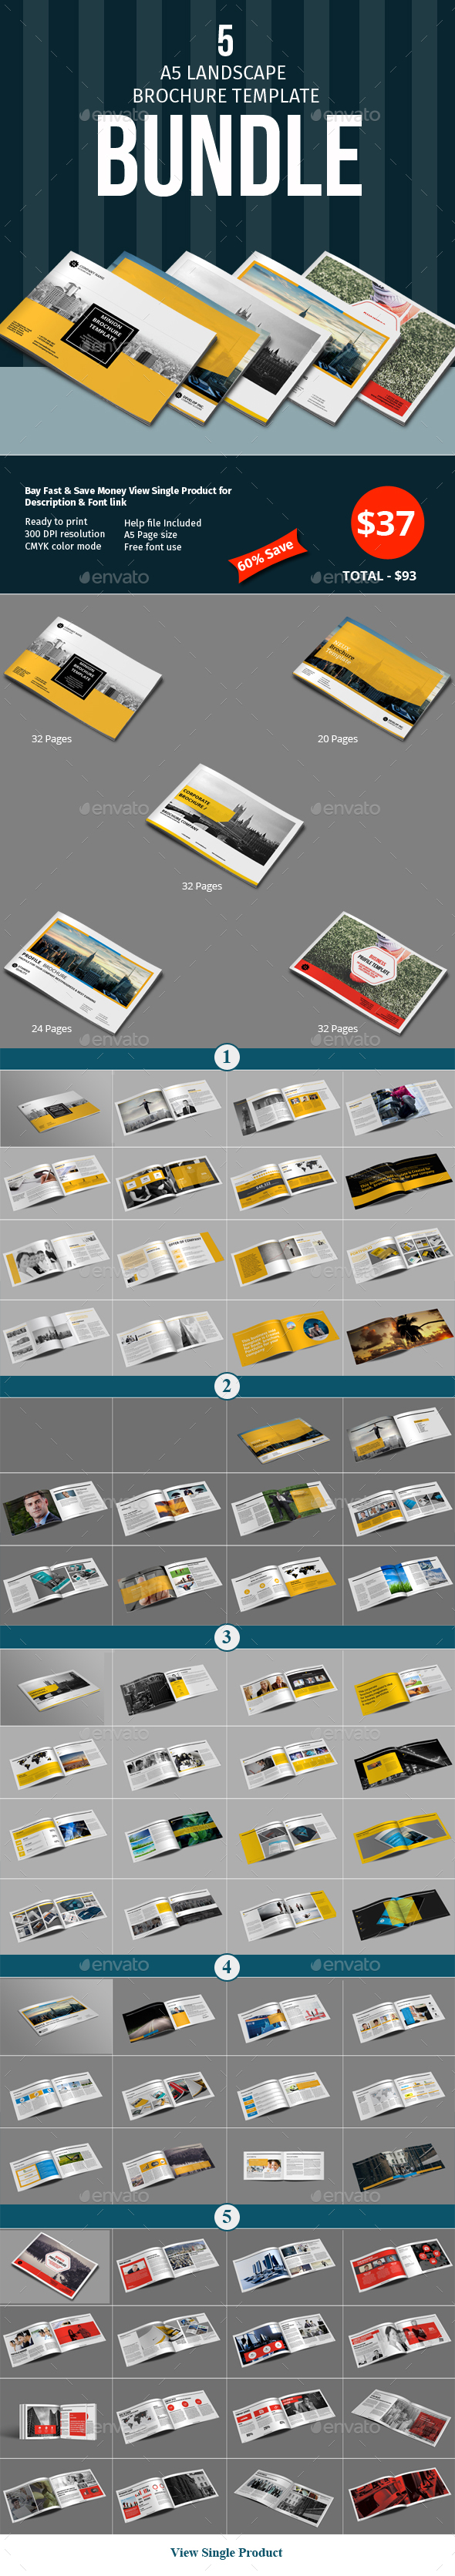 A5 Lanscape Brochure Template Bundle - Corporate Brochures